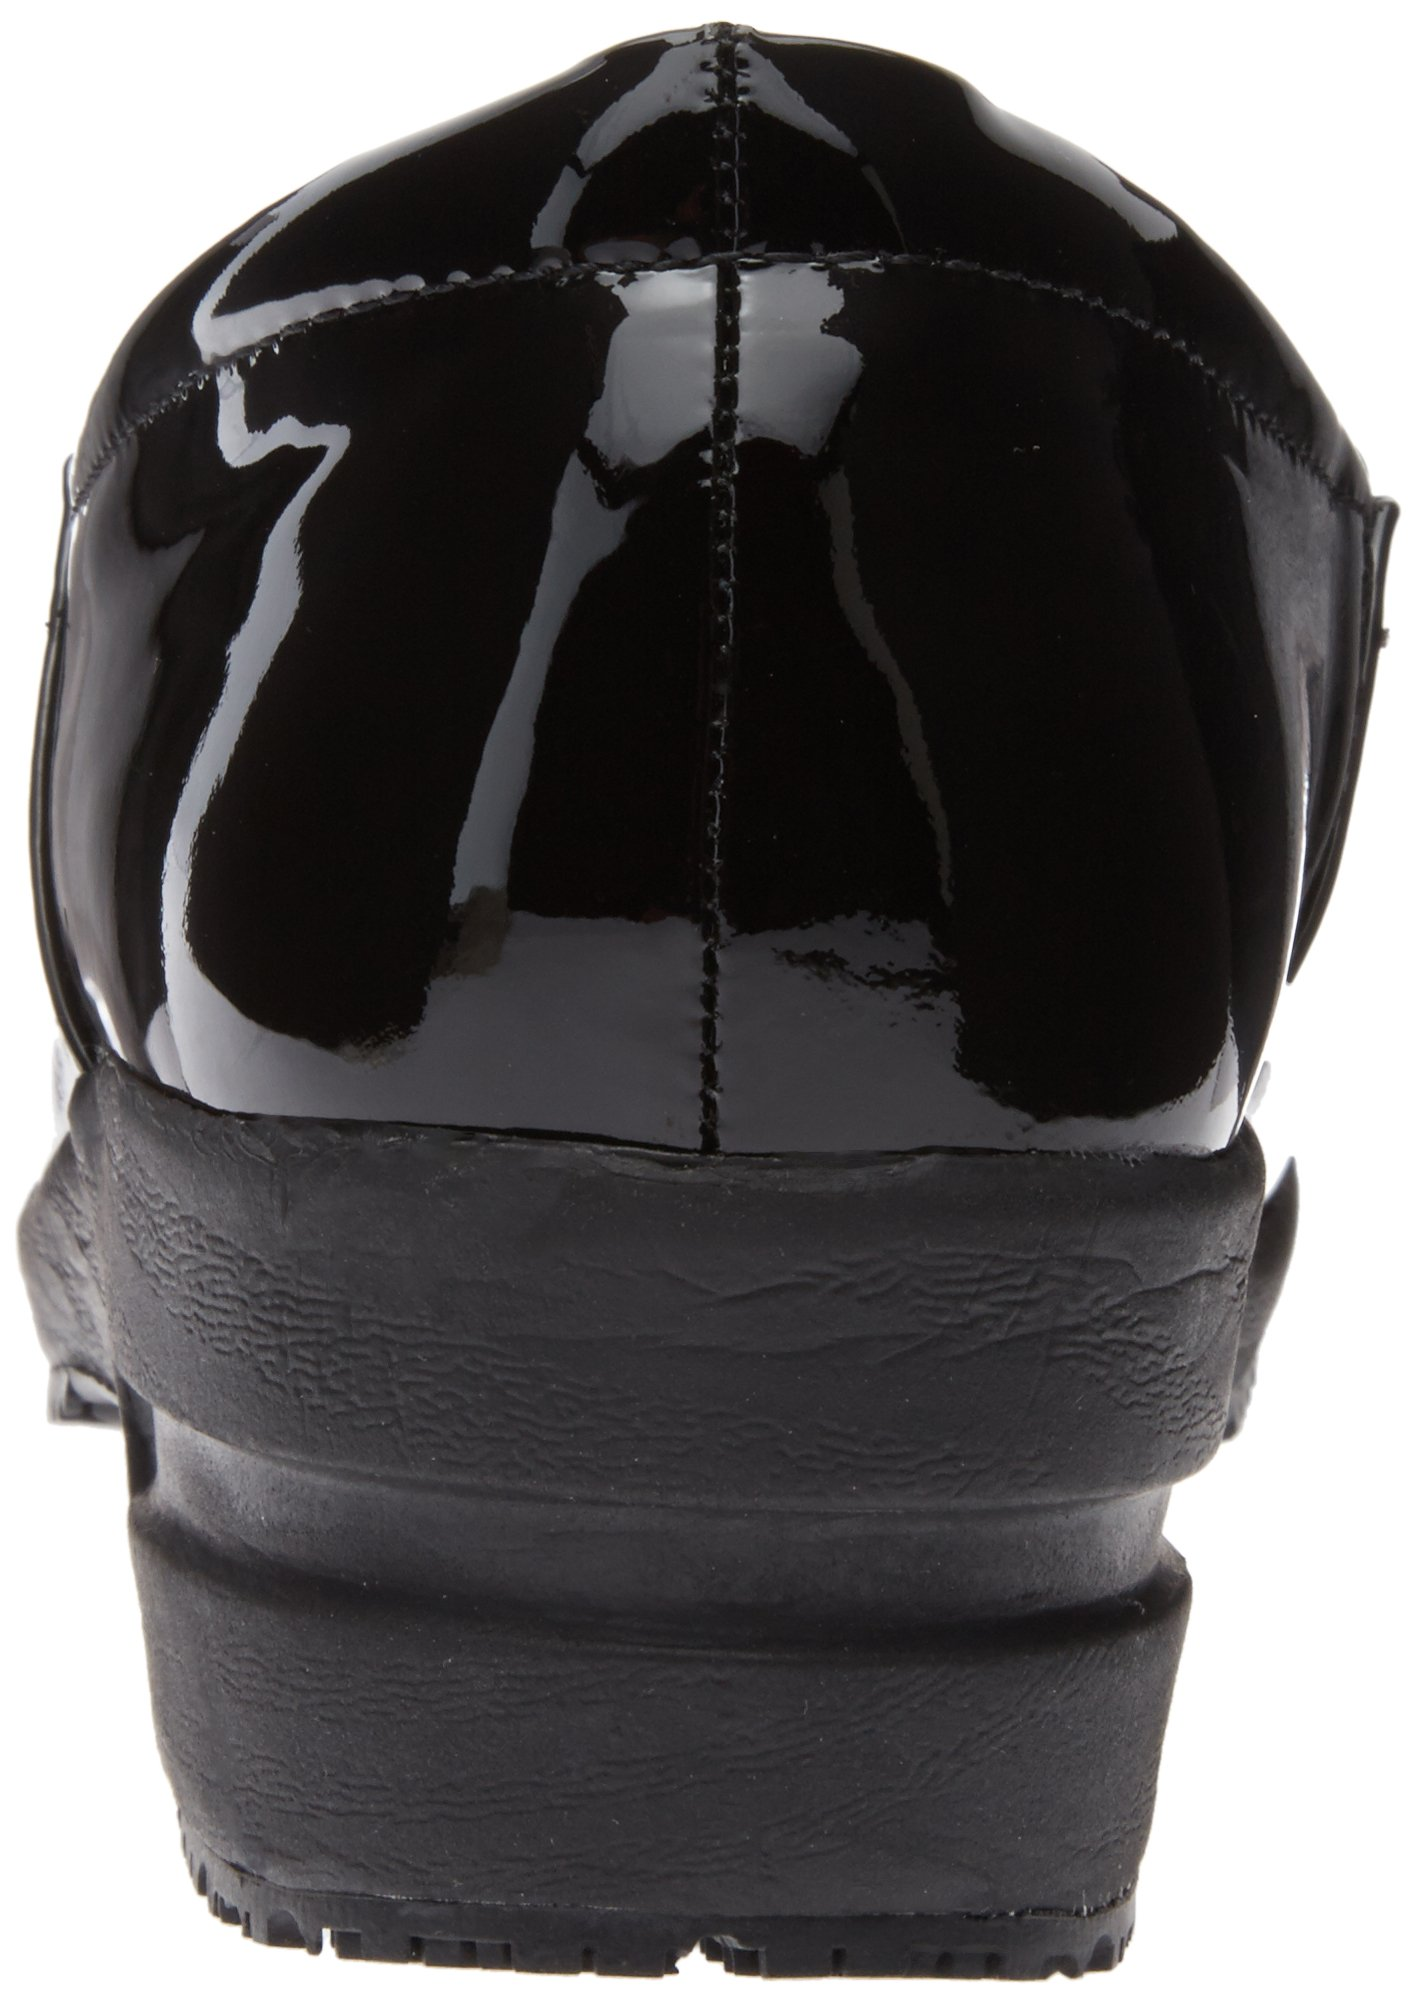 Cherokee Women's Patricia Step In Shoe, Black Patent, 6.5 M US by Cherokee (Image #2)